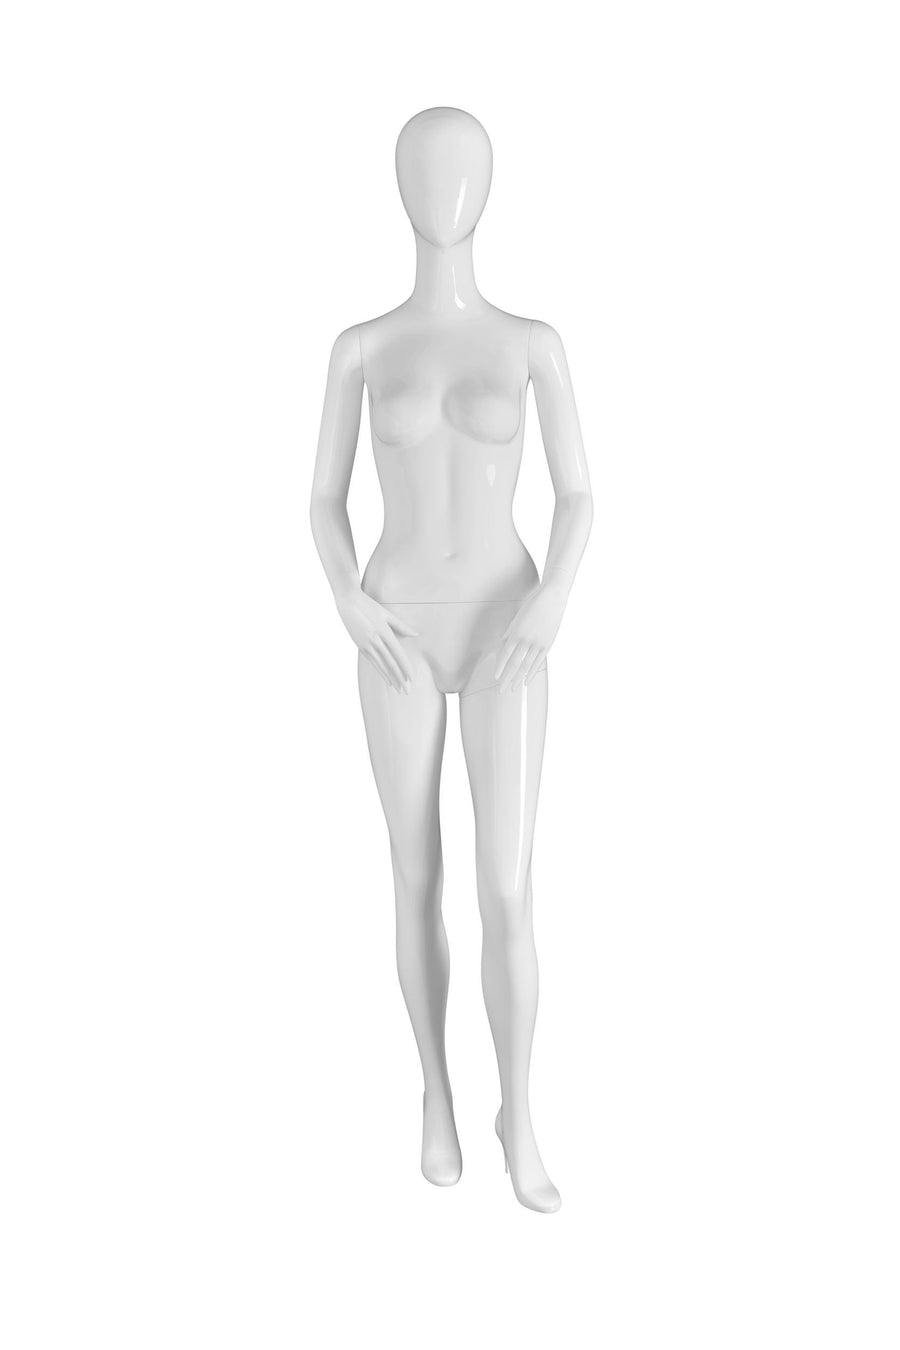 pure white female mannequin with hands resting on hips and blank face